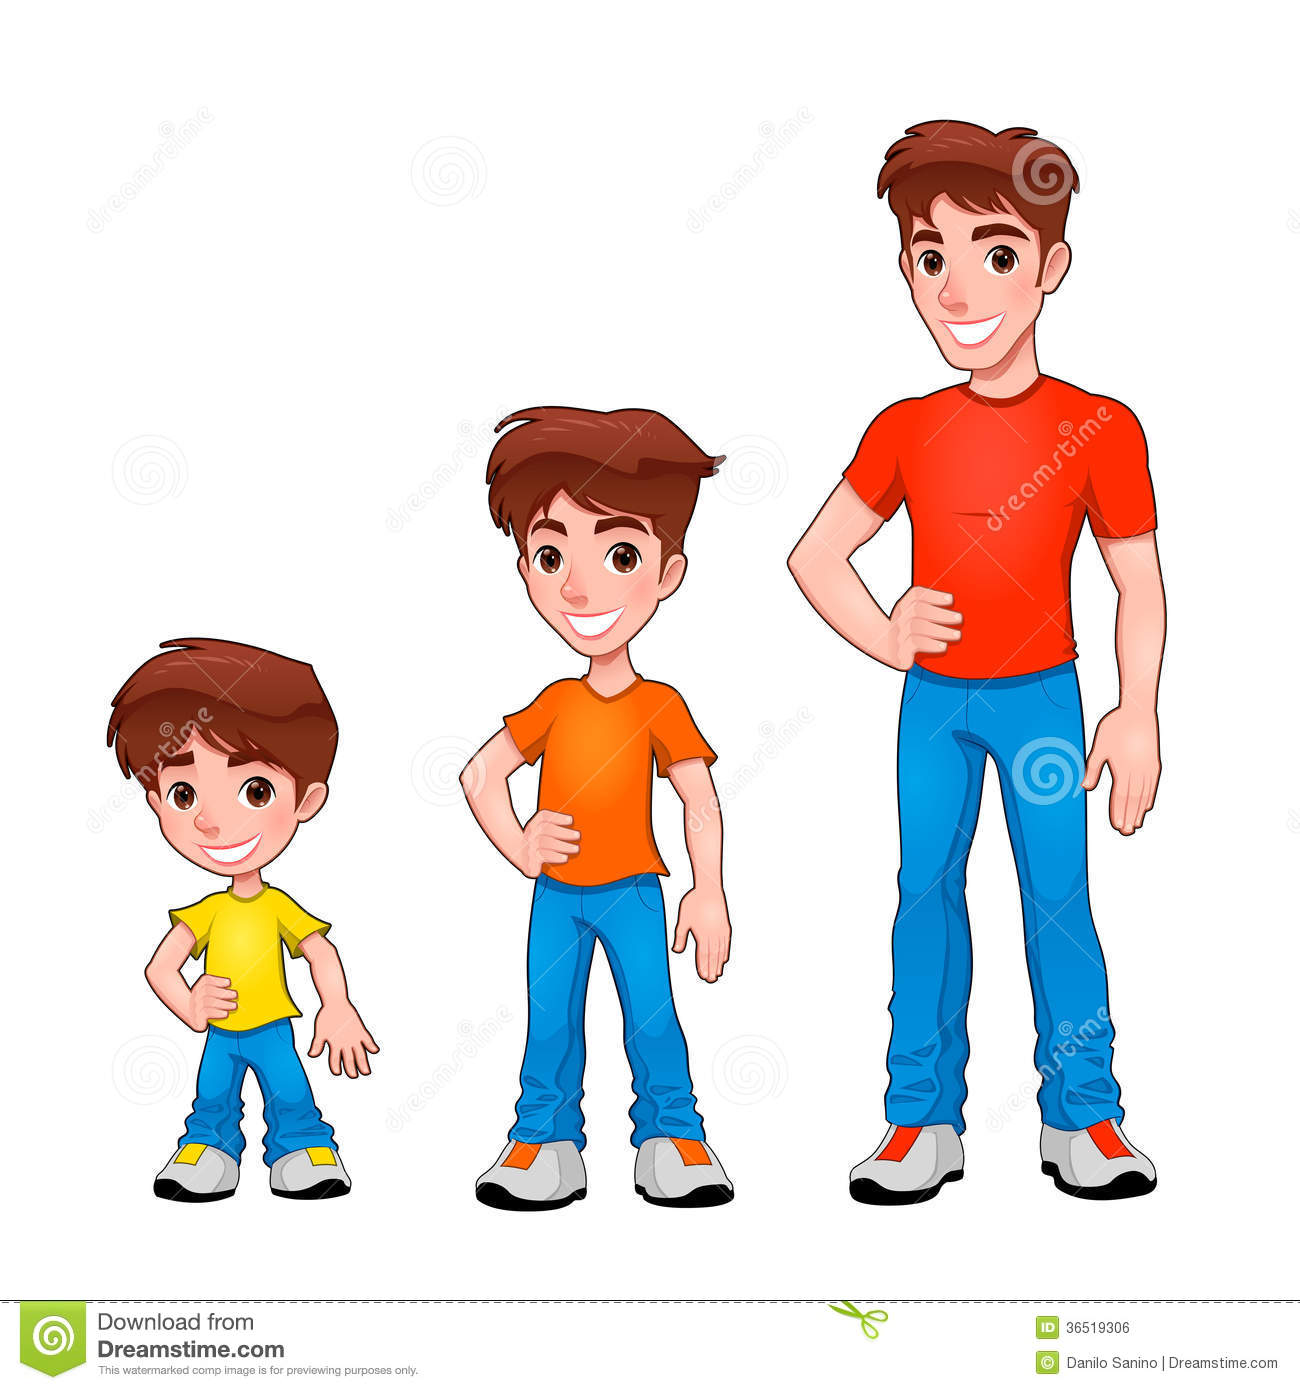 Boy turning to man clipart svg black and white stock Man and boy clipart - ClipartFest svg black and white stock